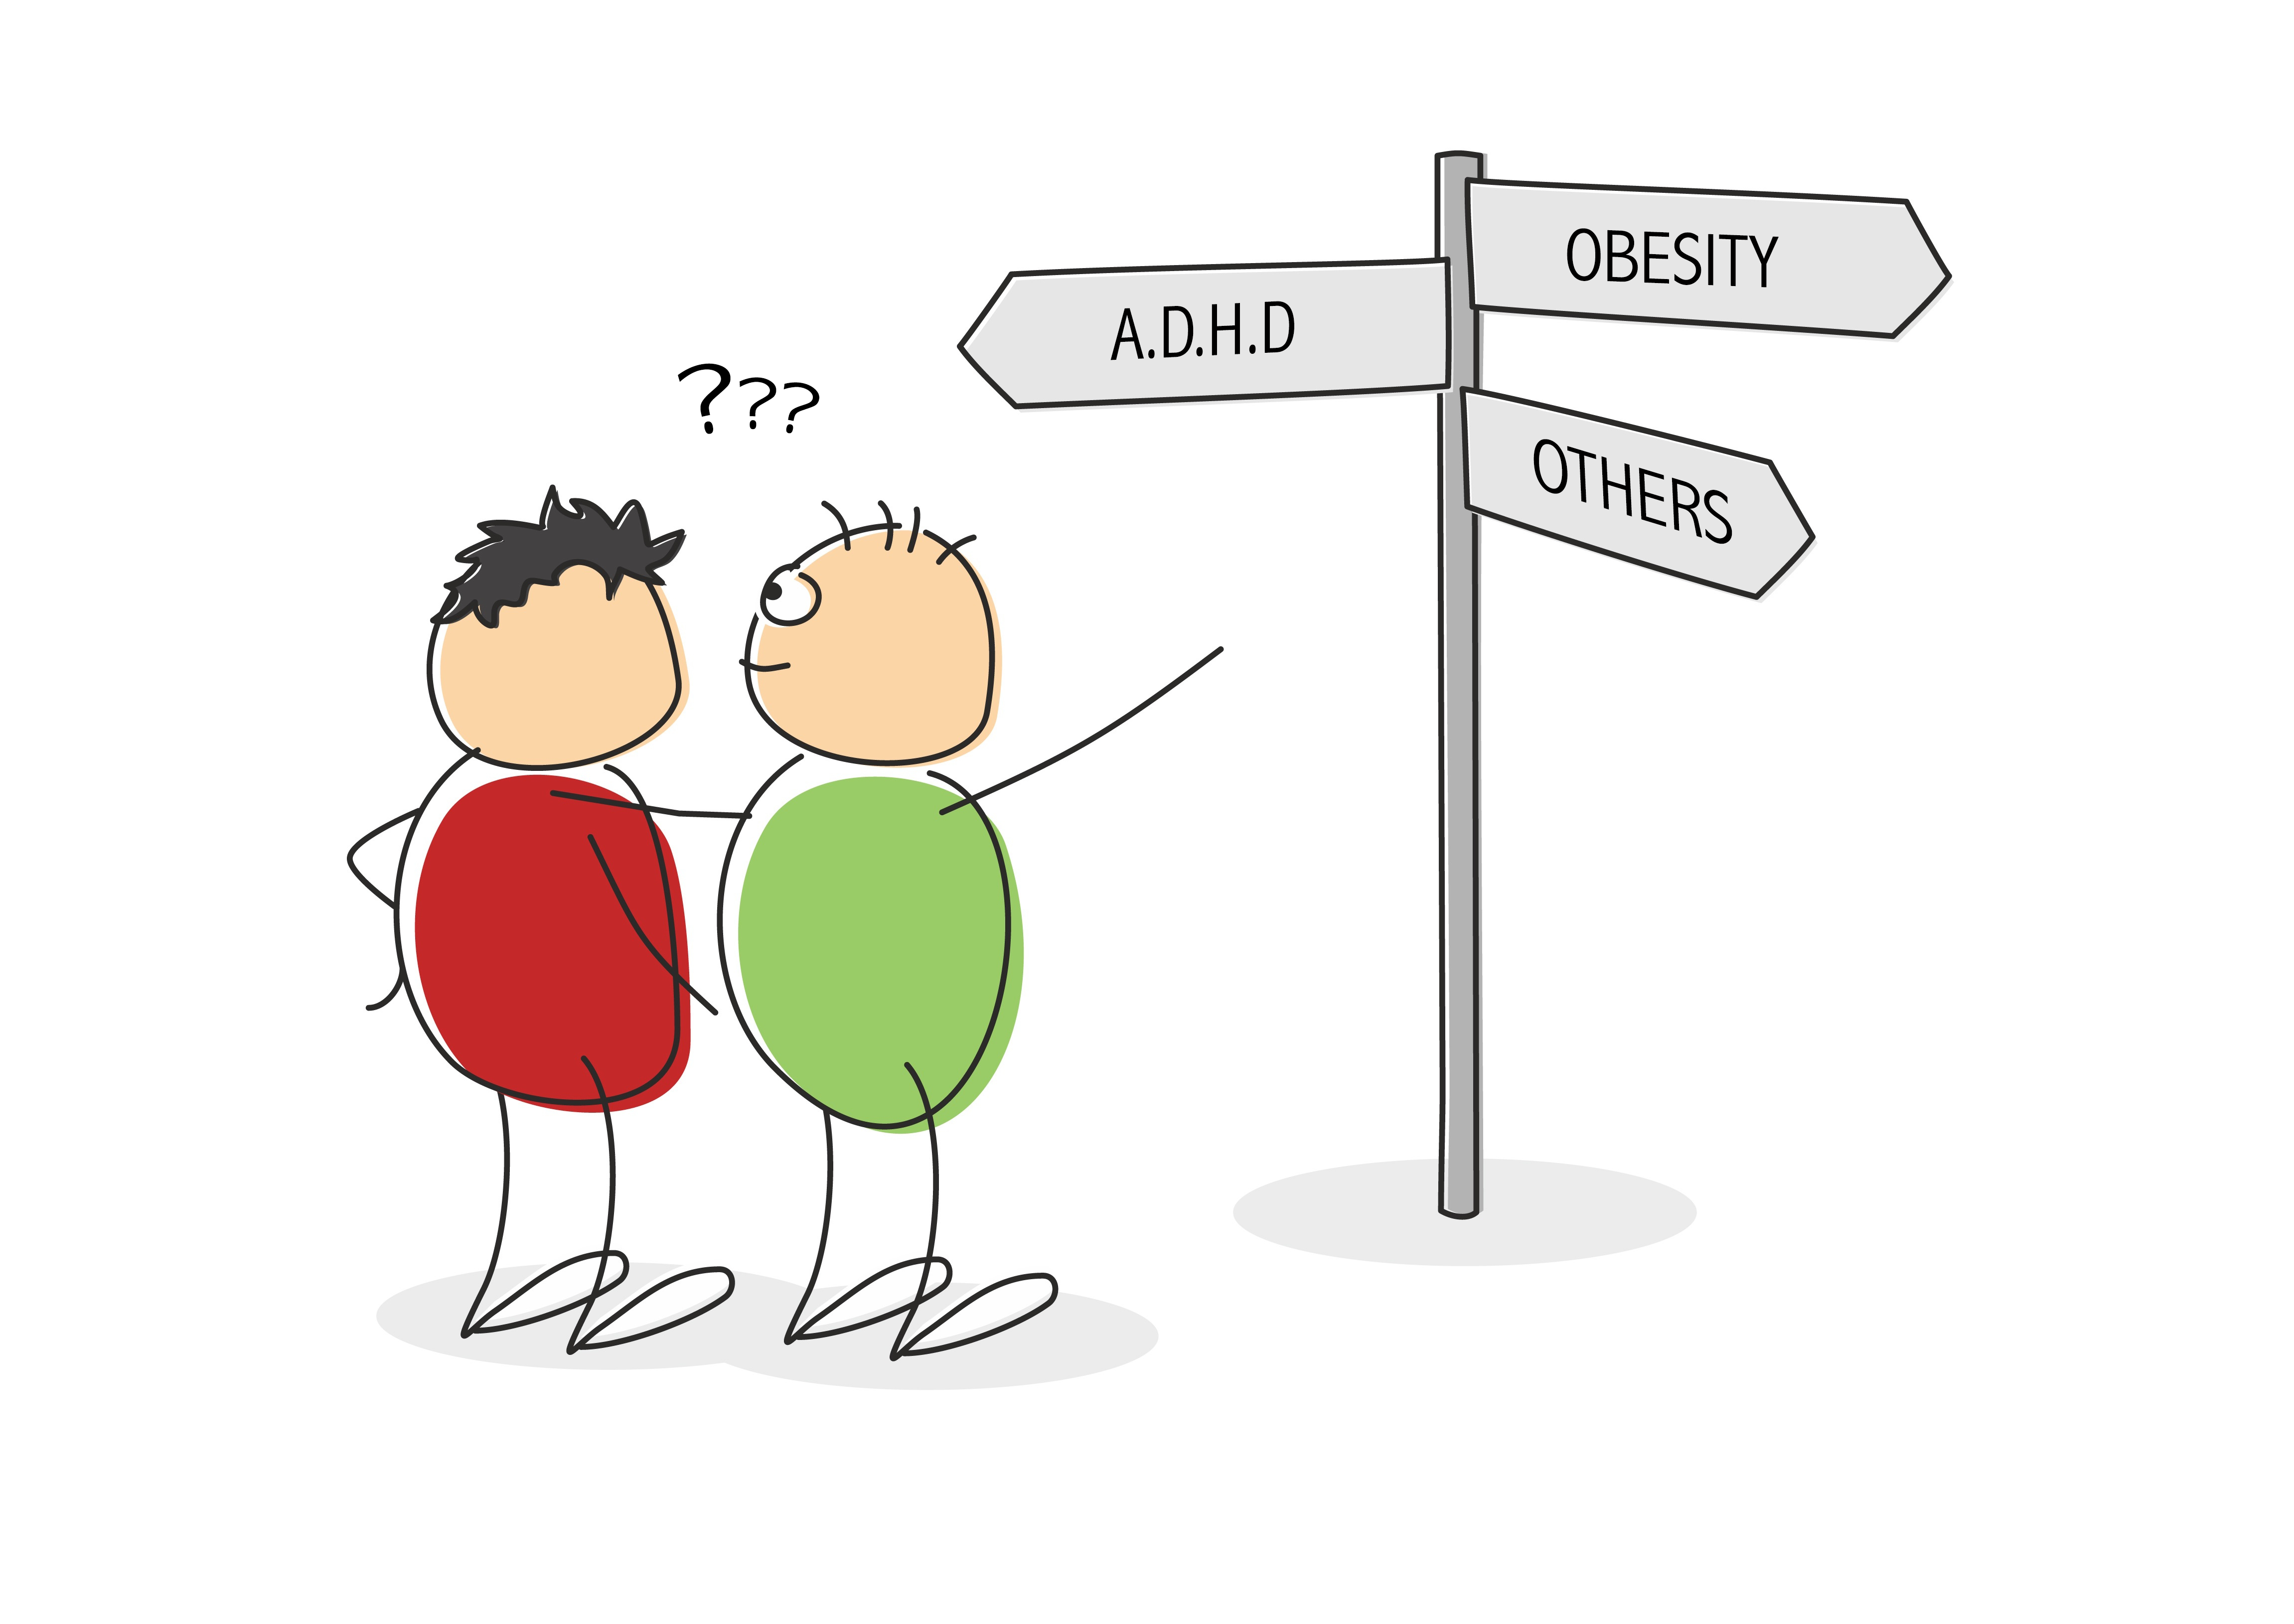 Adhd And Obesity In Adolescence And Early Adulthood Mind The Gap Blog